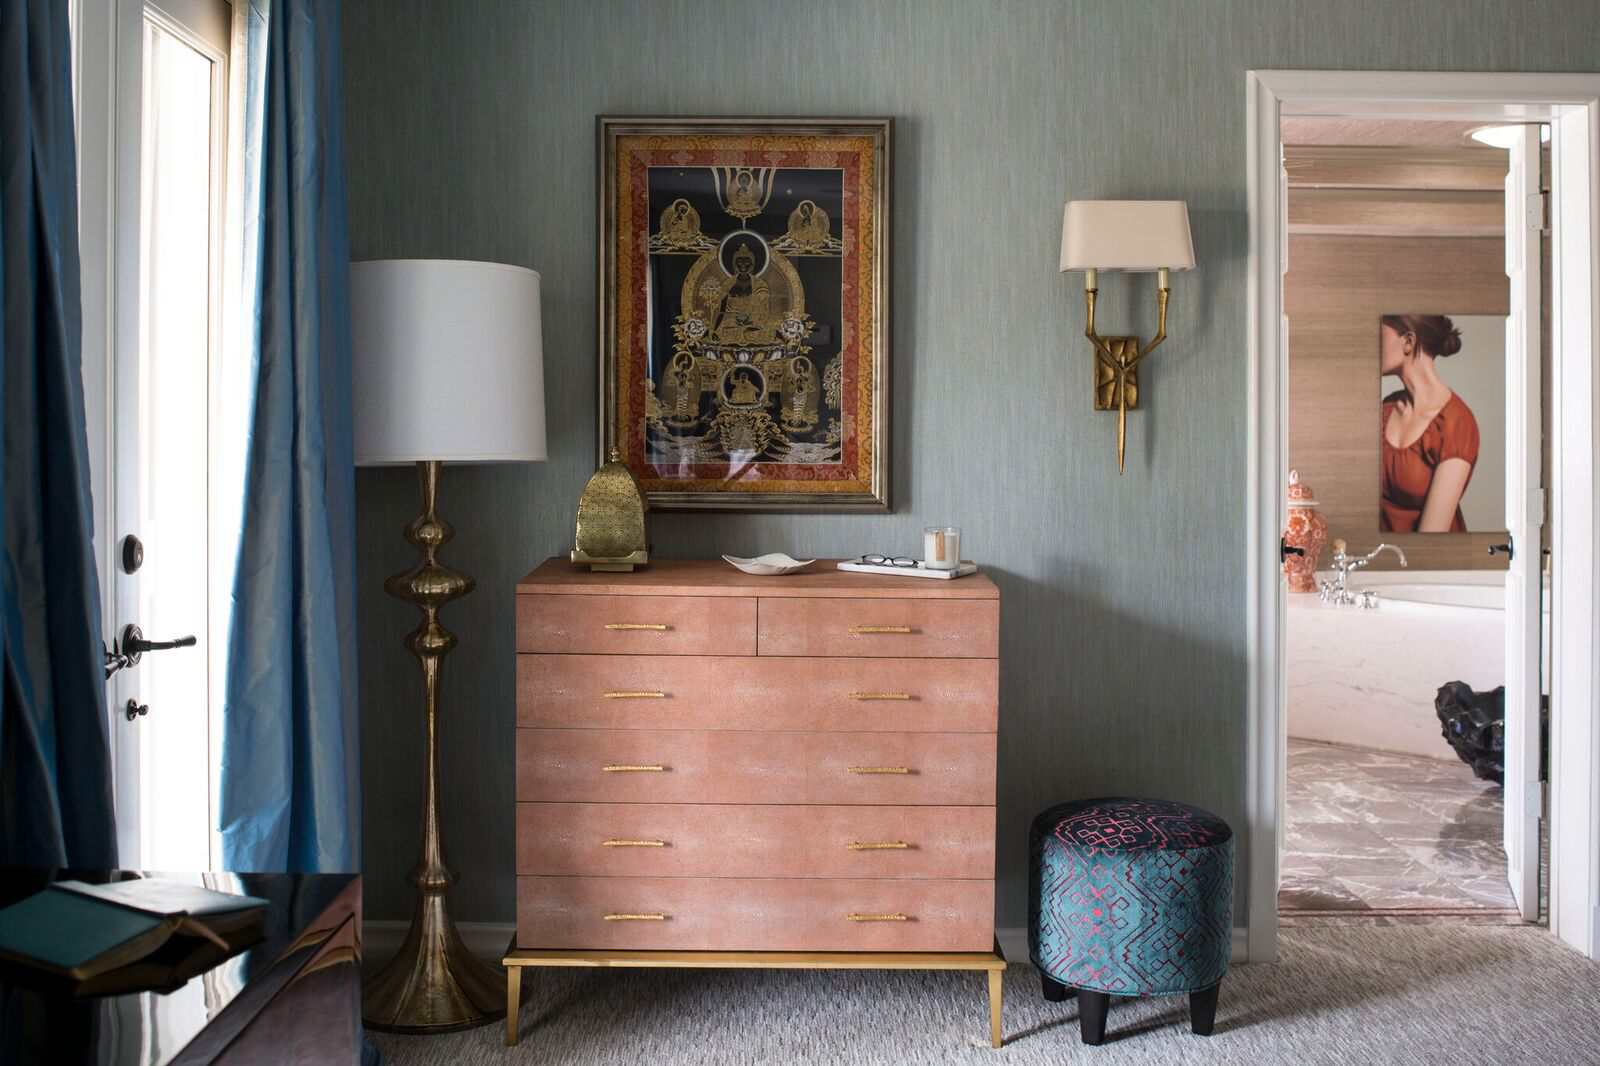 traditional furniture steeped in history